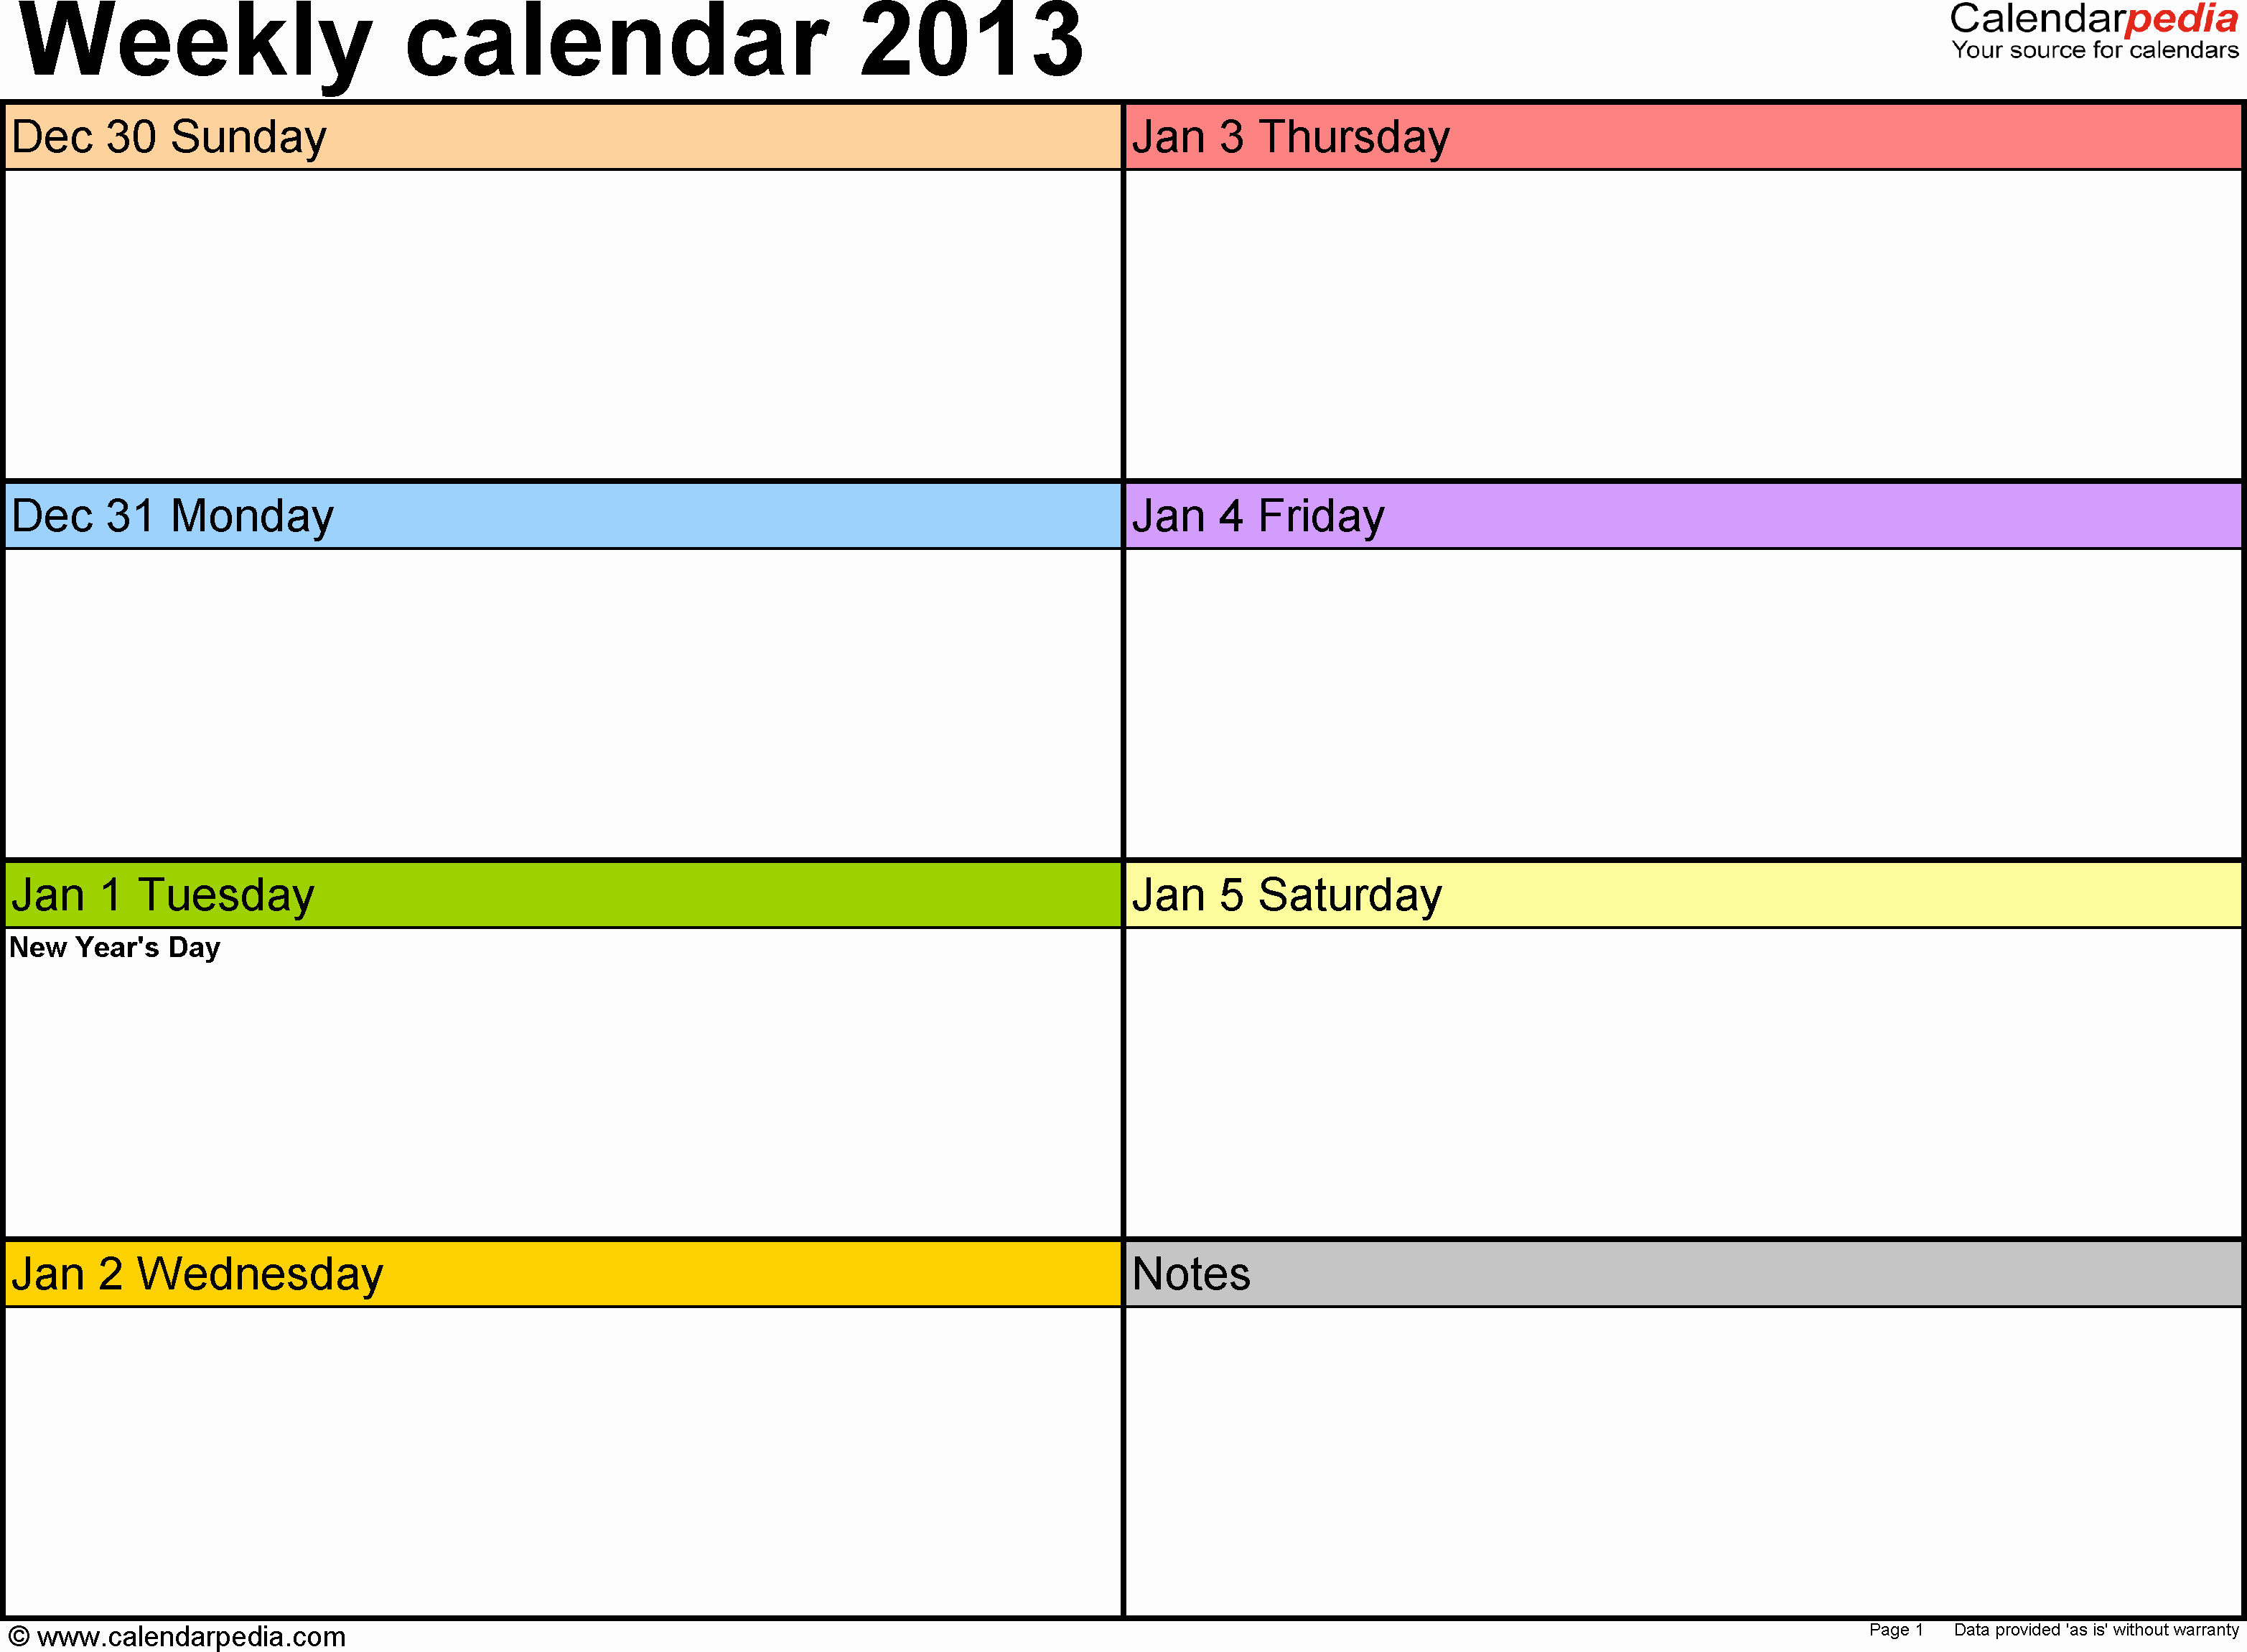 5 Day Calendar Template Word Unique Weekly Calendar 2013 for Word 4 Free Printable Templates